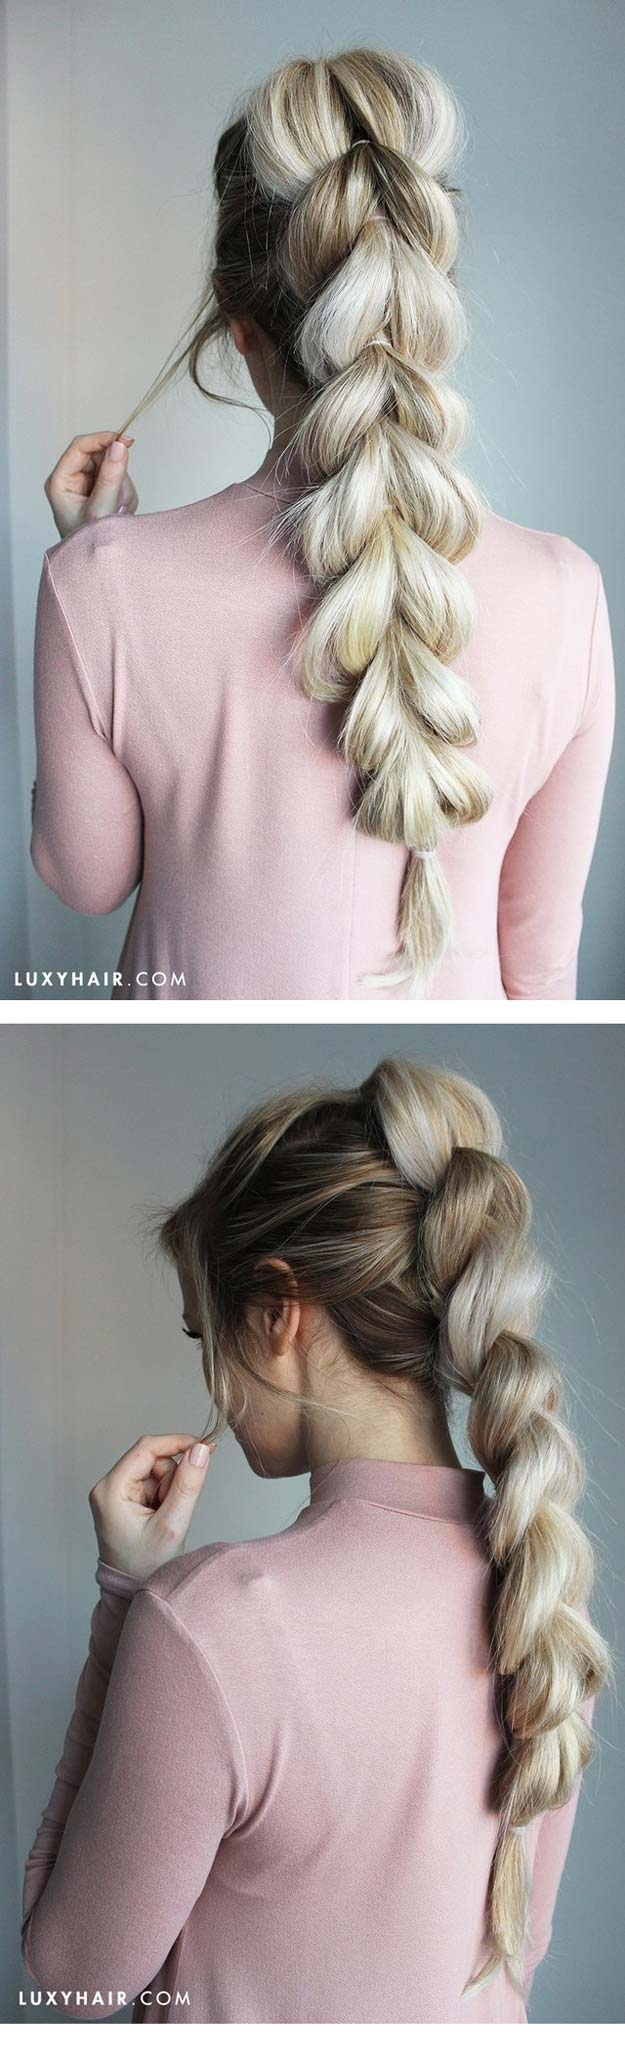 hair easy style ideas 21 tips to instantly make your hair look thicker fashion 3616